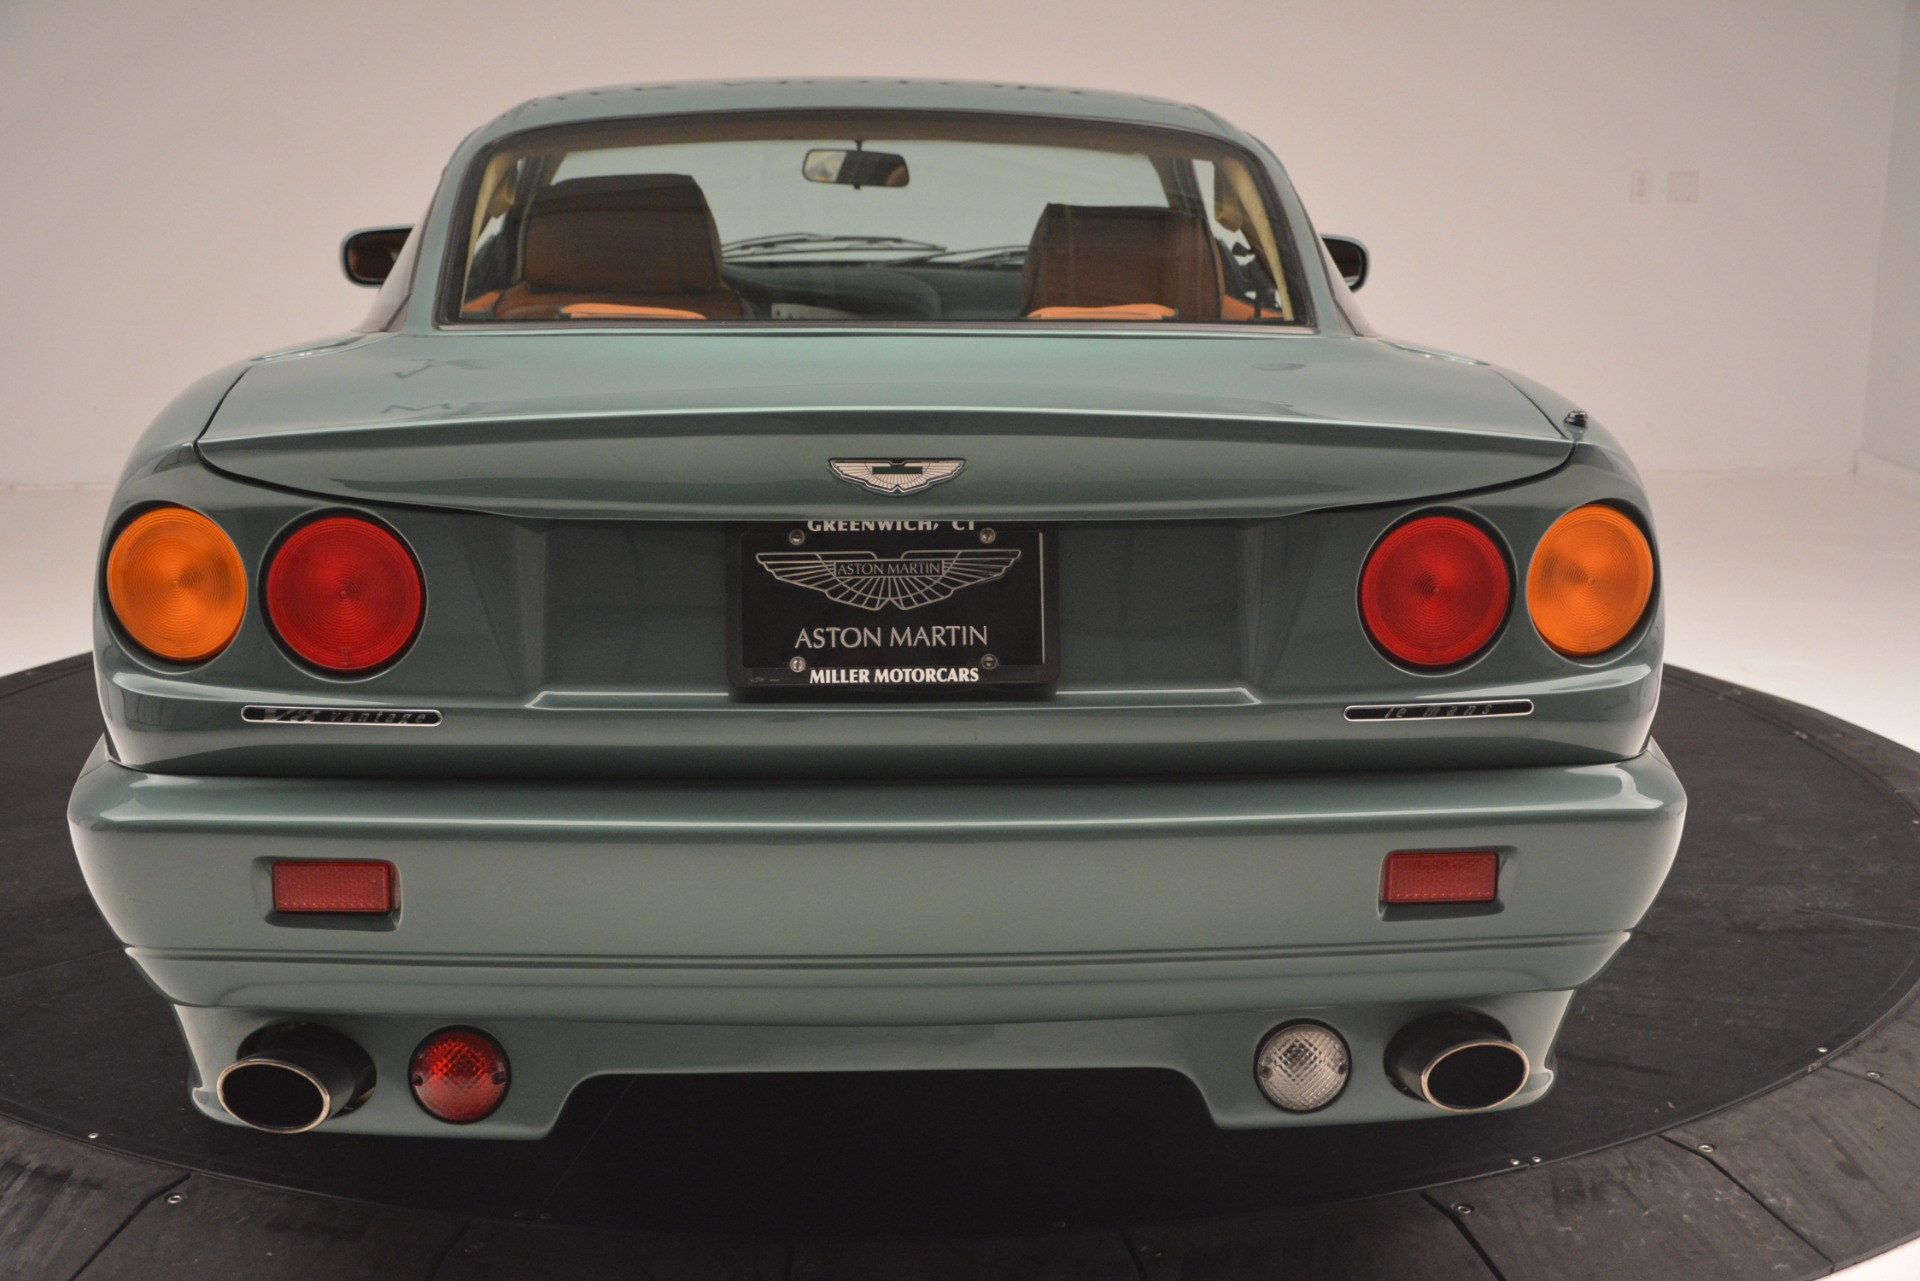 Used 1999 Aston Martin V8 Vantage Le Mans V600 Coupe For Sale 550000 In Greenwich, CT